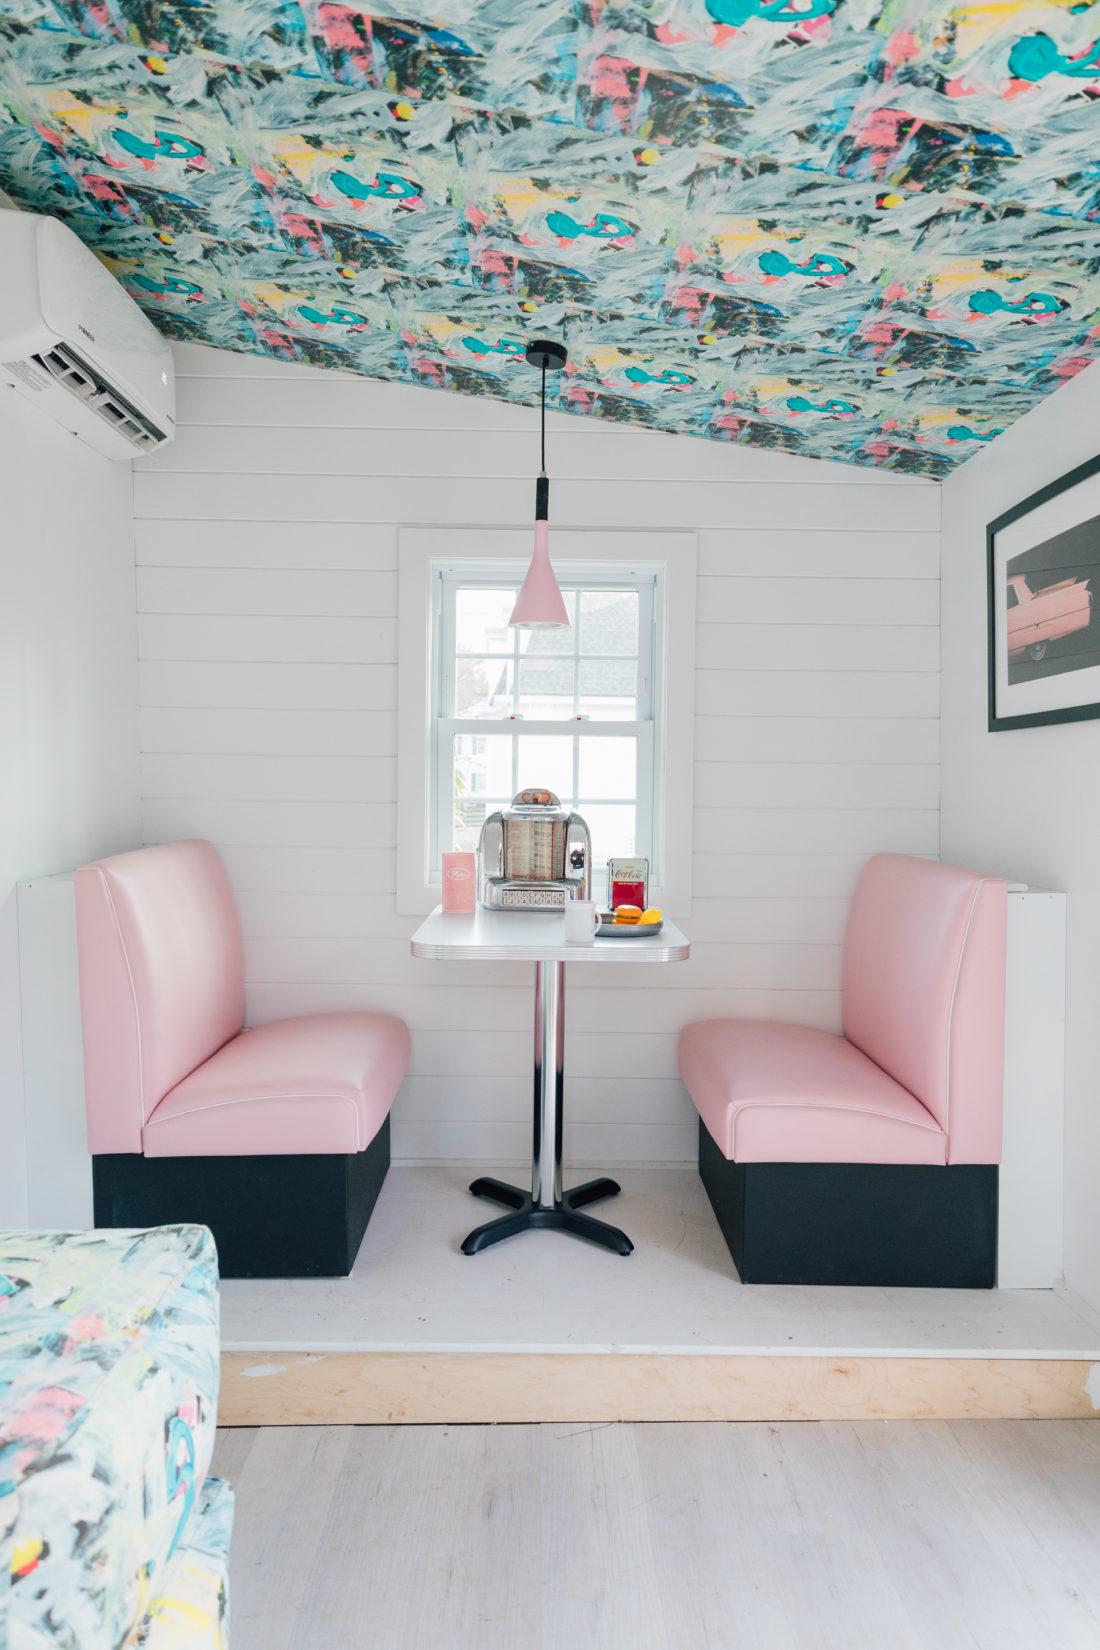 Eva Amurri unveils Jimmy Mae's Diner, the adorable playhouse she built for her kids on her Connecticut property